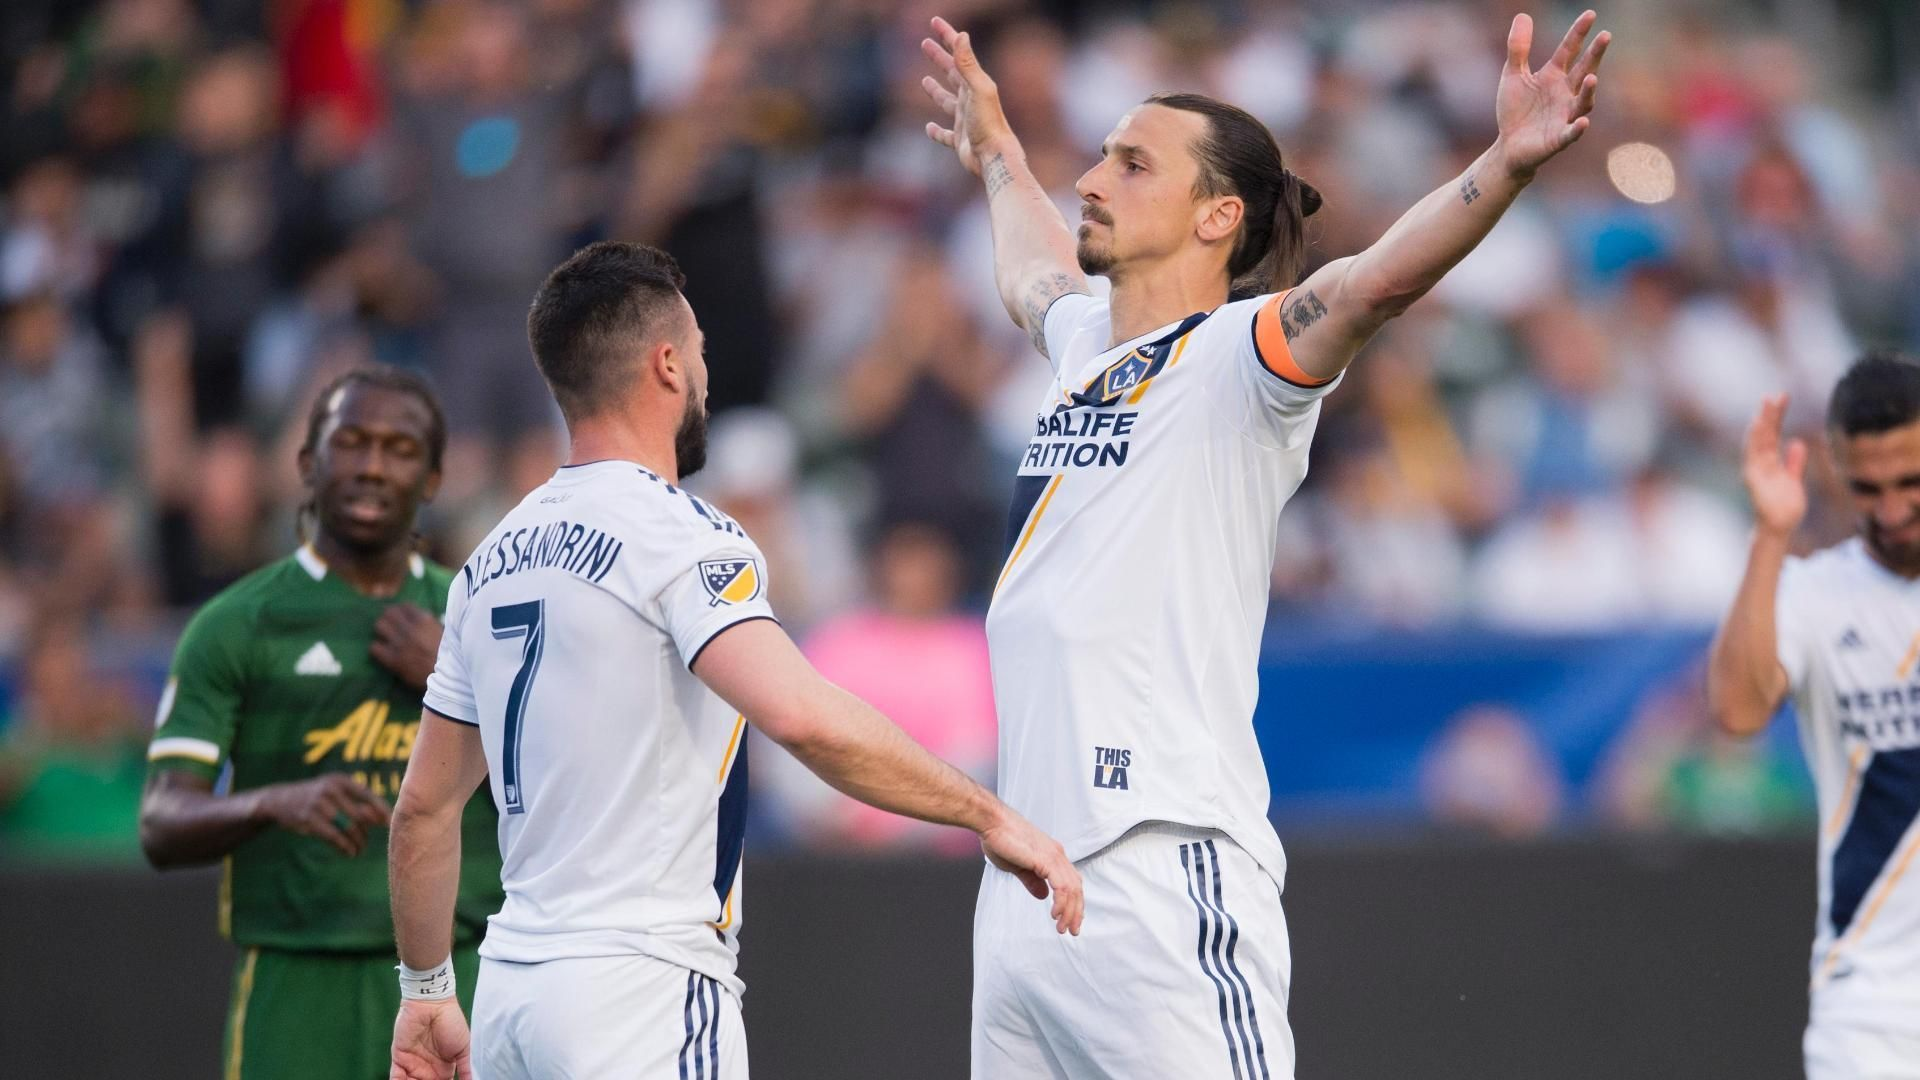 LA Galaxy's Ibrahimovic after brace - 'I promised my son three goals' 2